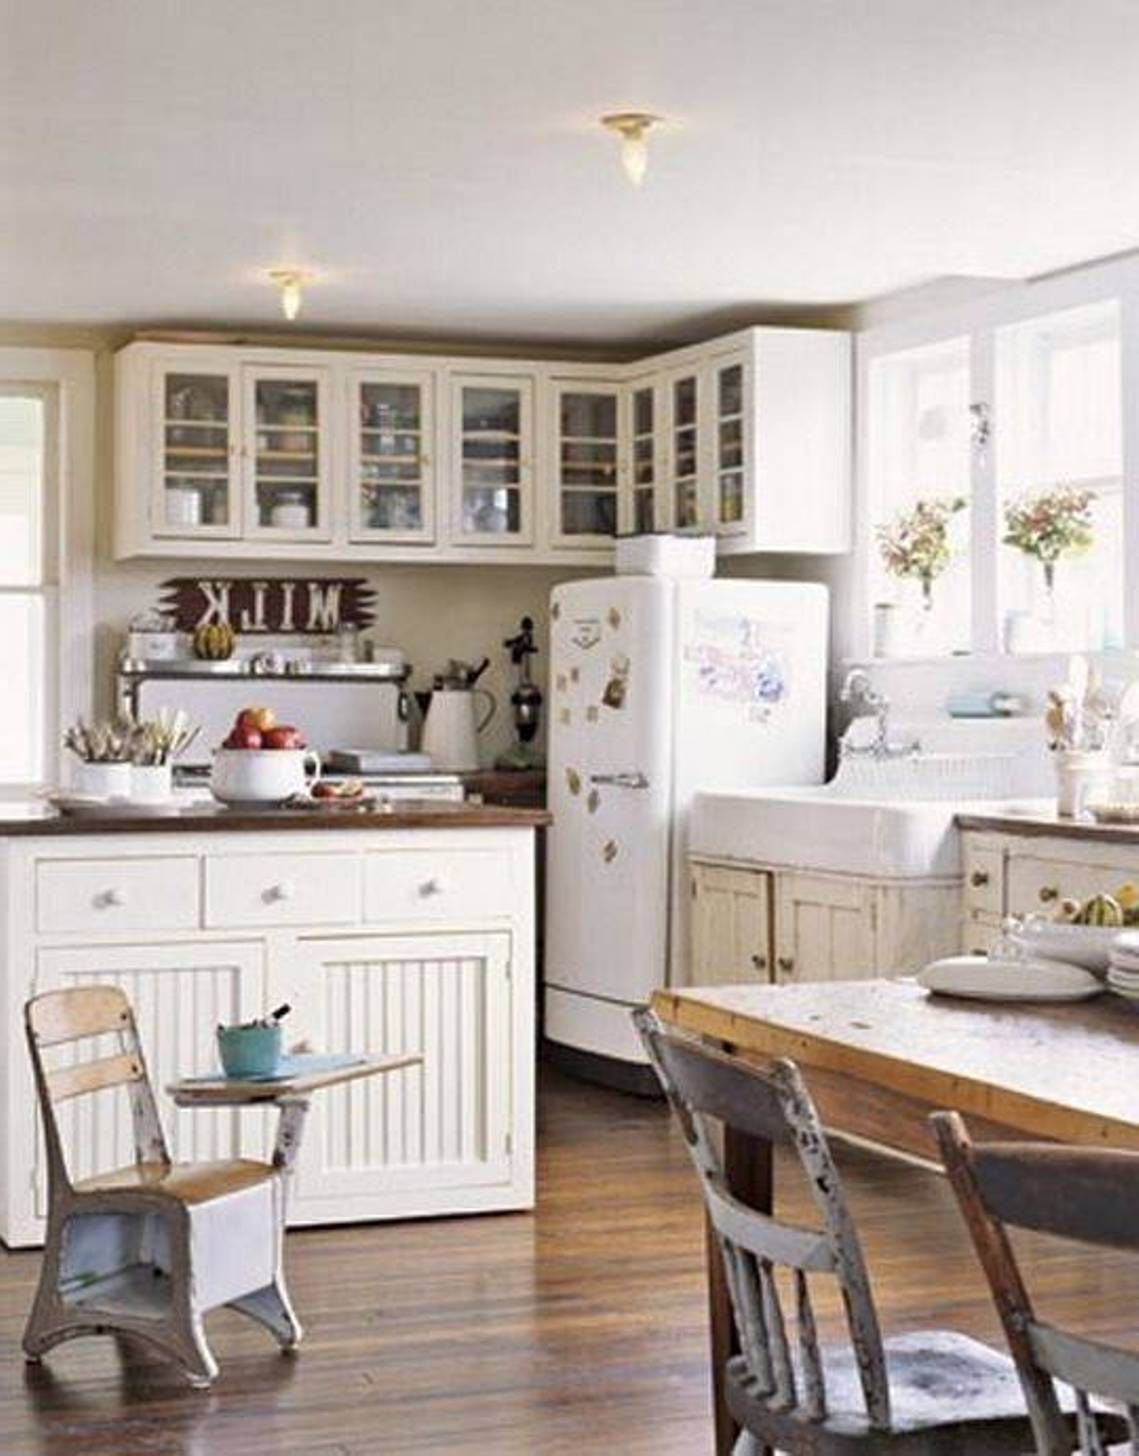 Shabby Chic White Kitchen Farmhouse Style  Kitchen Design Ideas Prepossessing Farmhouse Kitchen Design Design Decoration